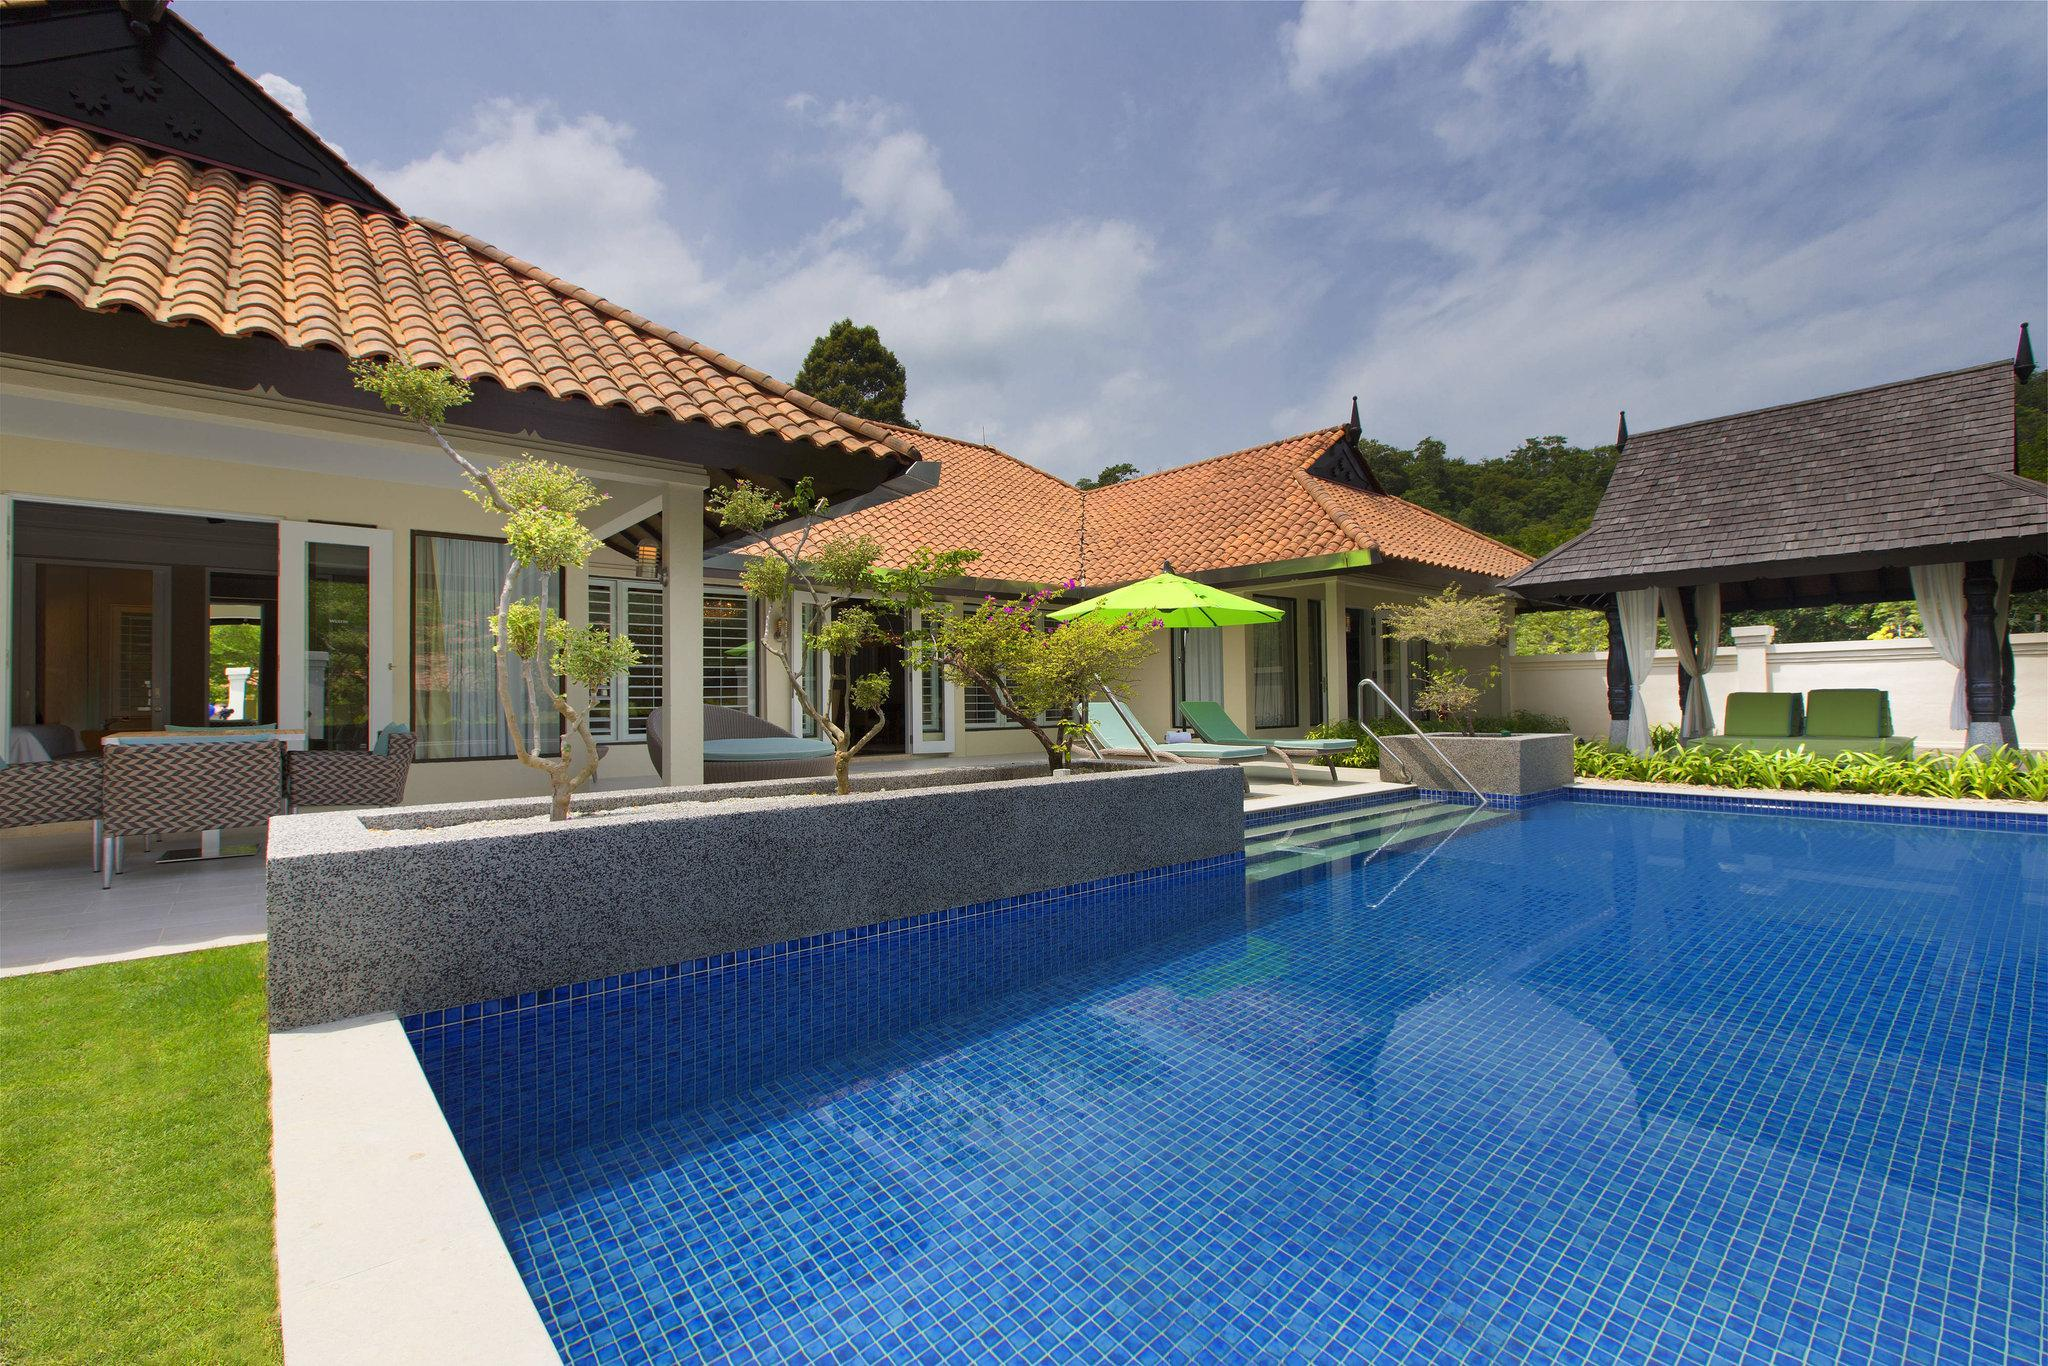 2 Bedroom Villa, Private pool